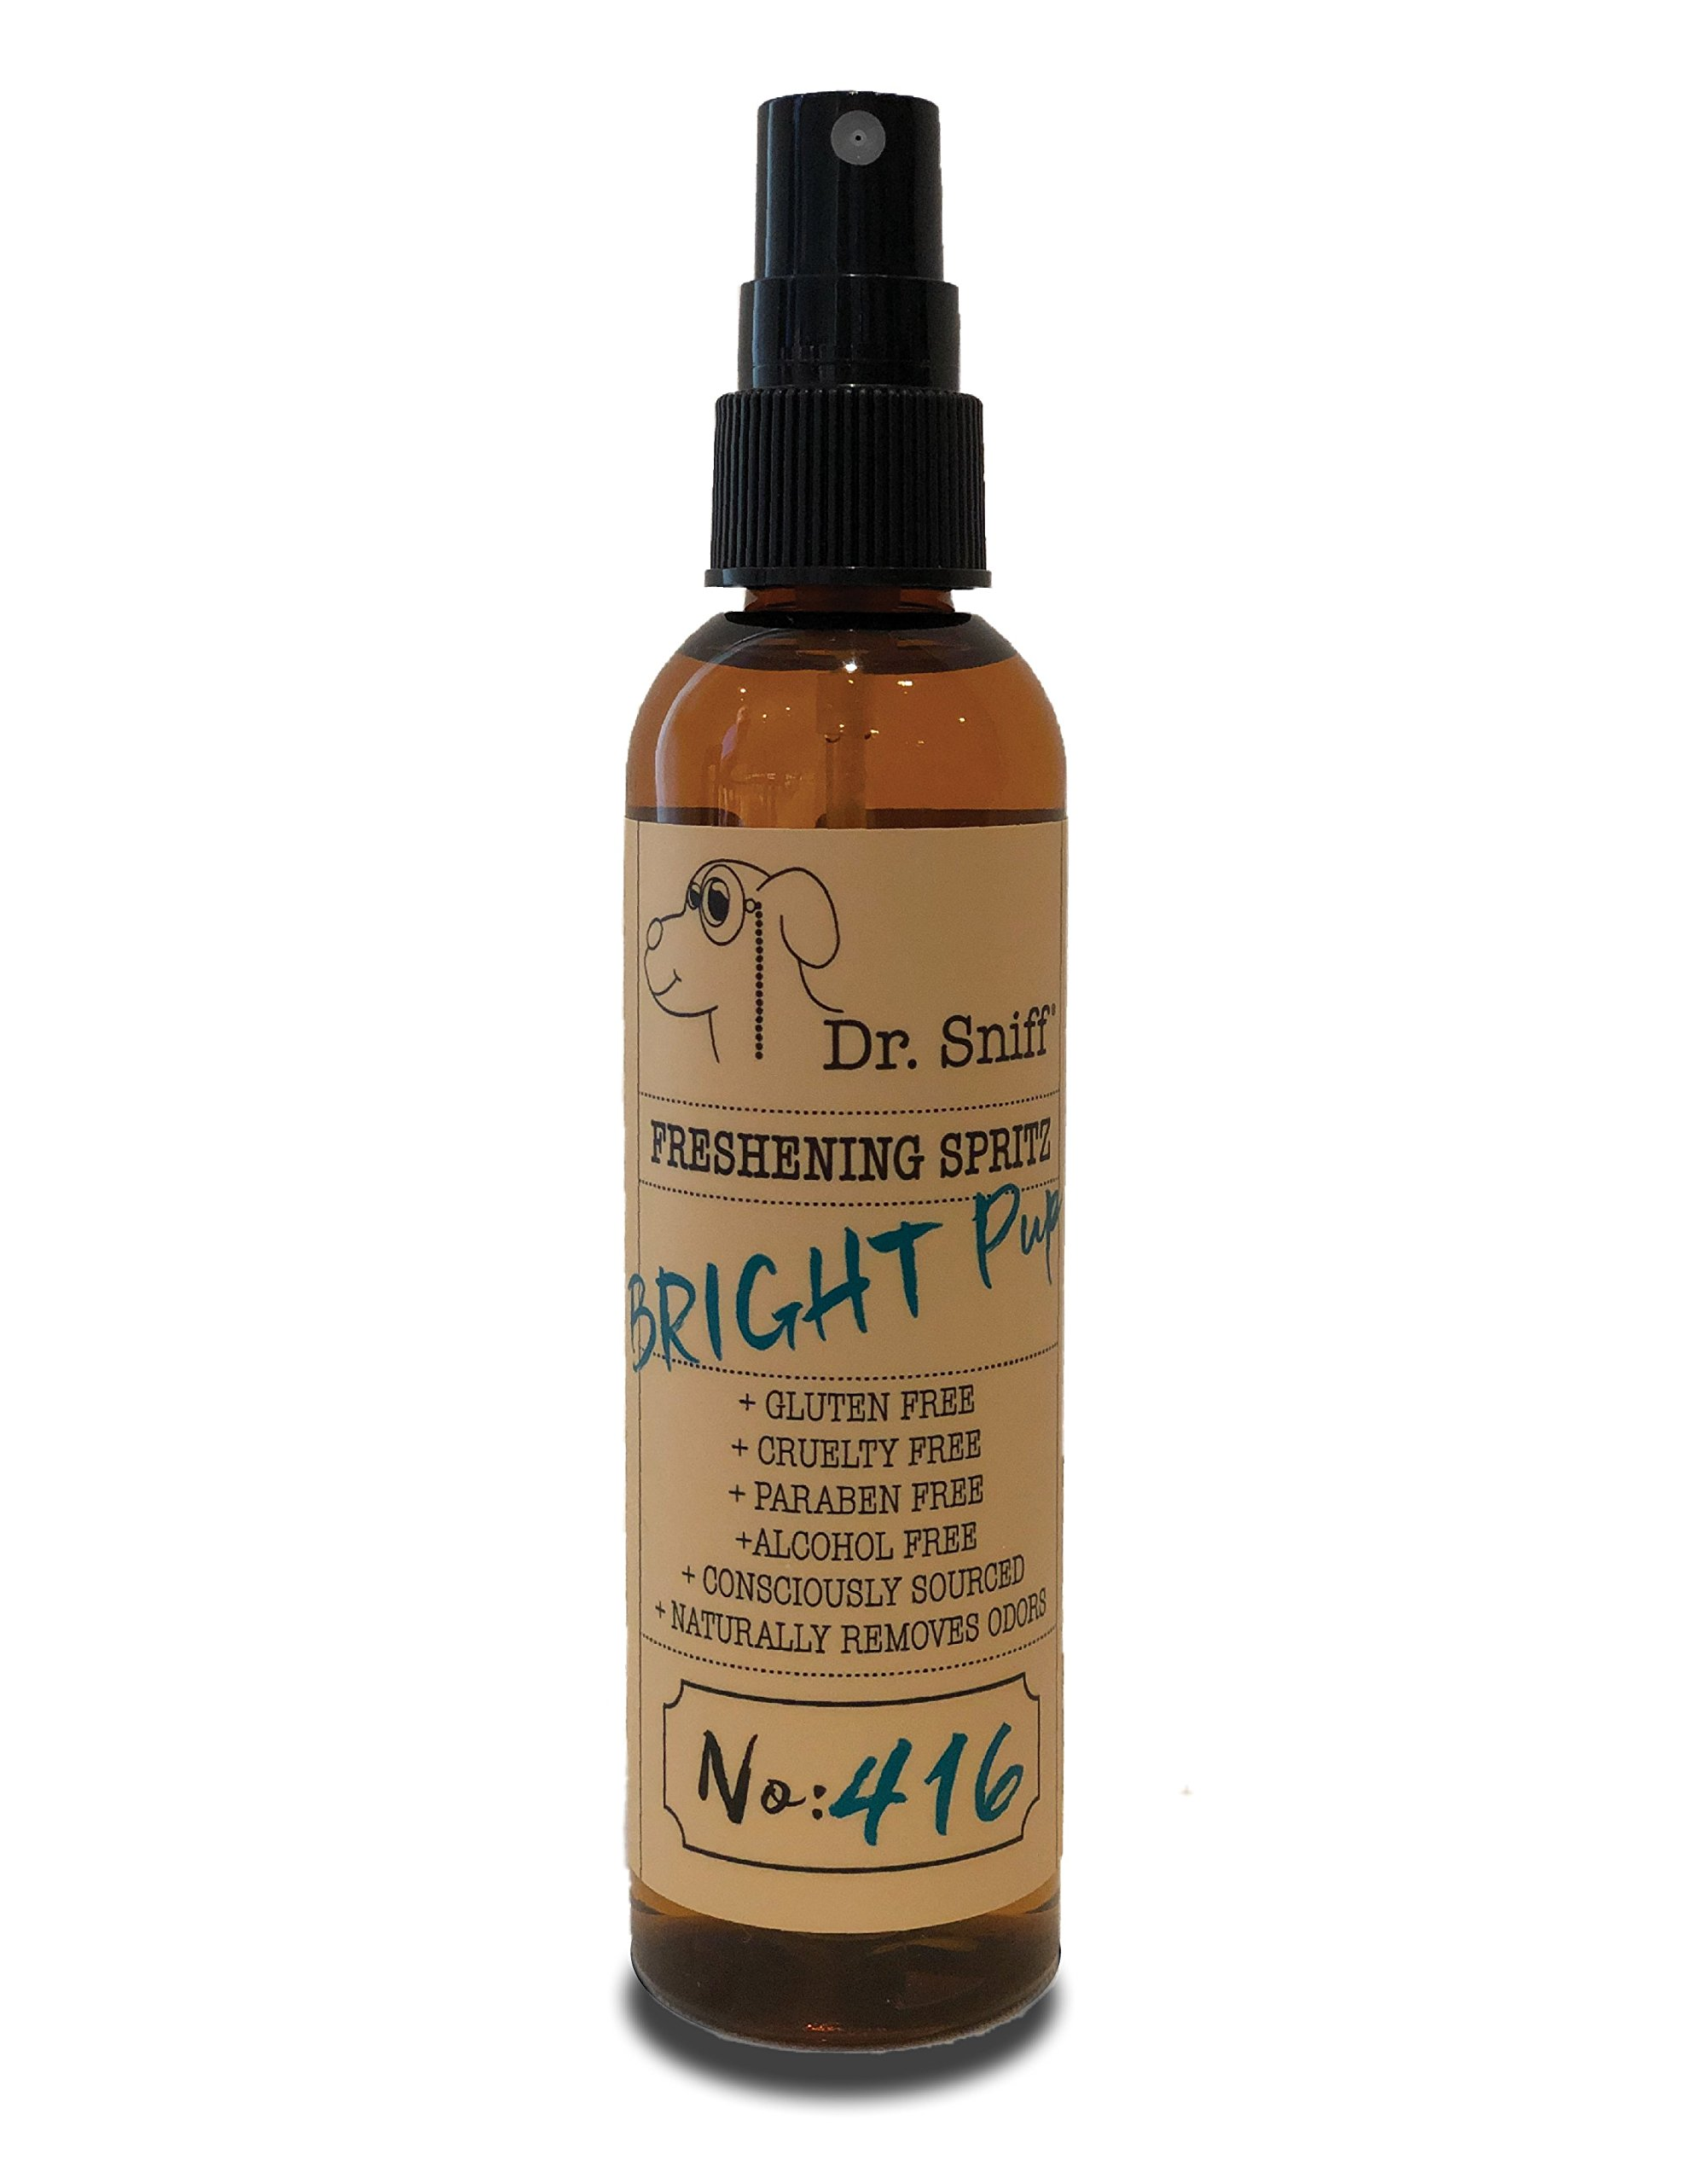 Dr. Sniff Freshening Spritz (Bright Pup) | Deodorizing Spray | Made with Organic Aloe, Organic Agave and Argan Oil | Free of Alcohol, Parabens, Toxins, Sulfates and Gluten | Eliminates Odors | 4oz